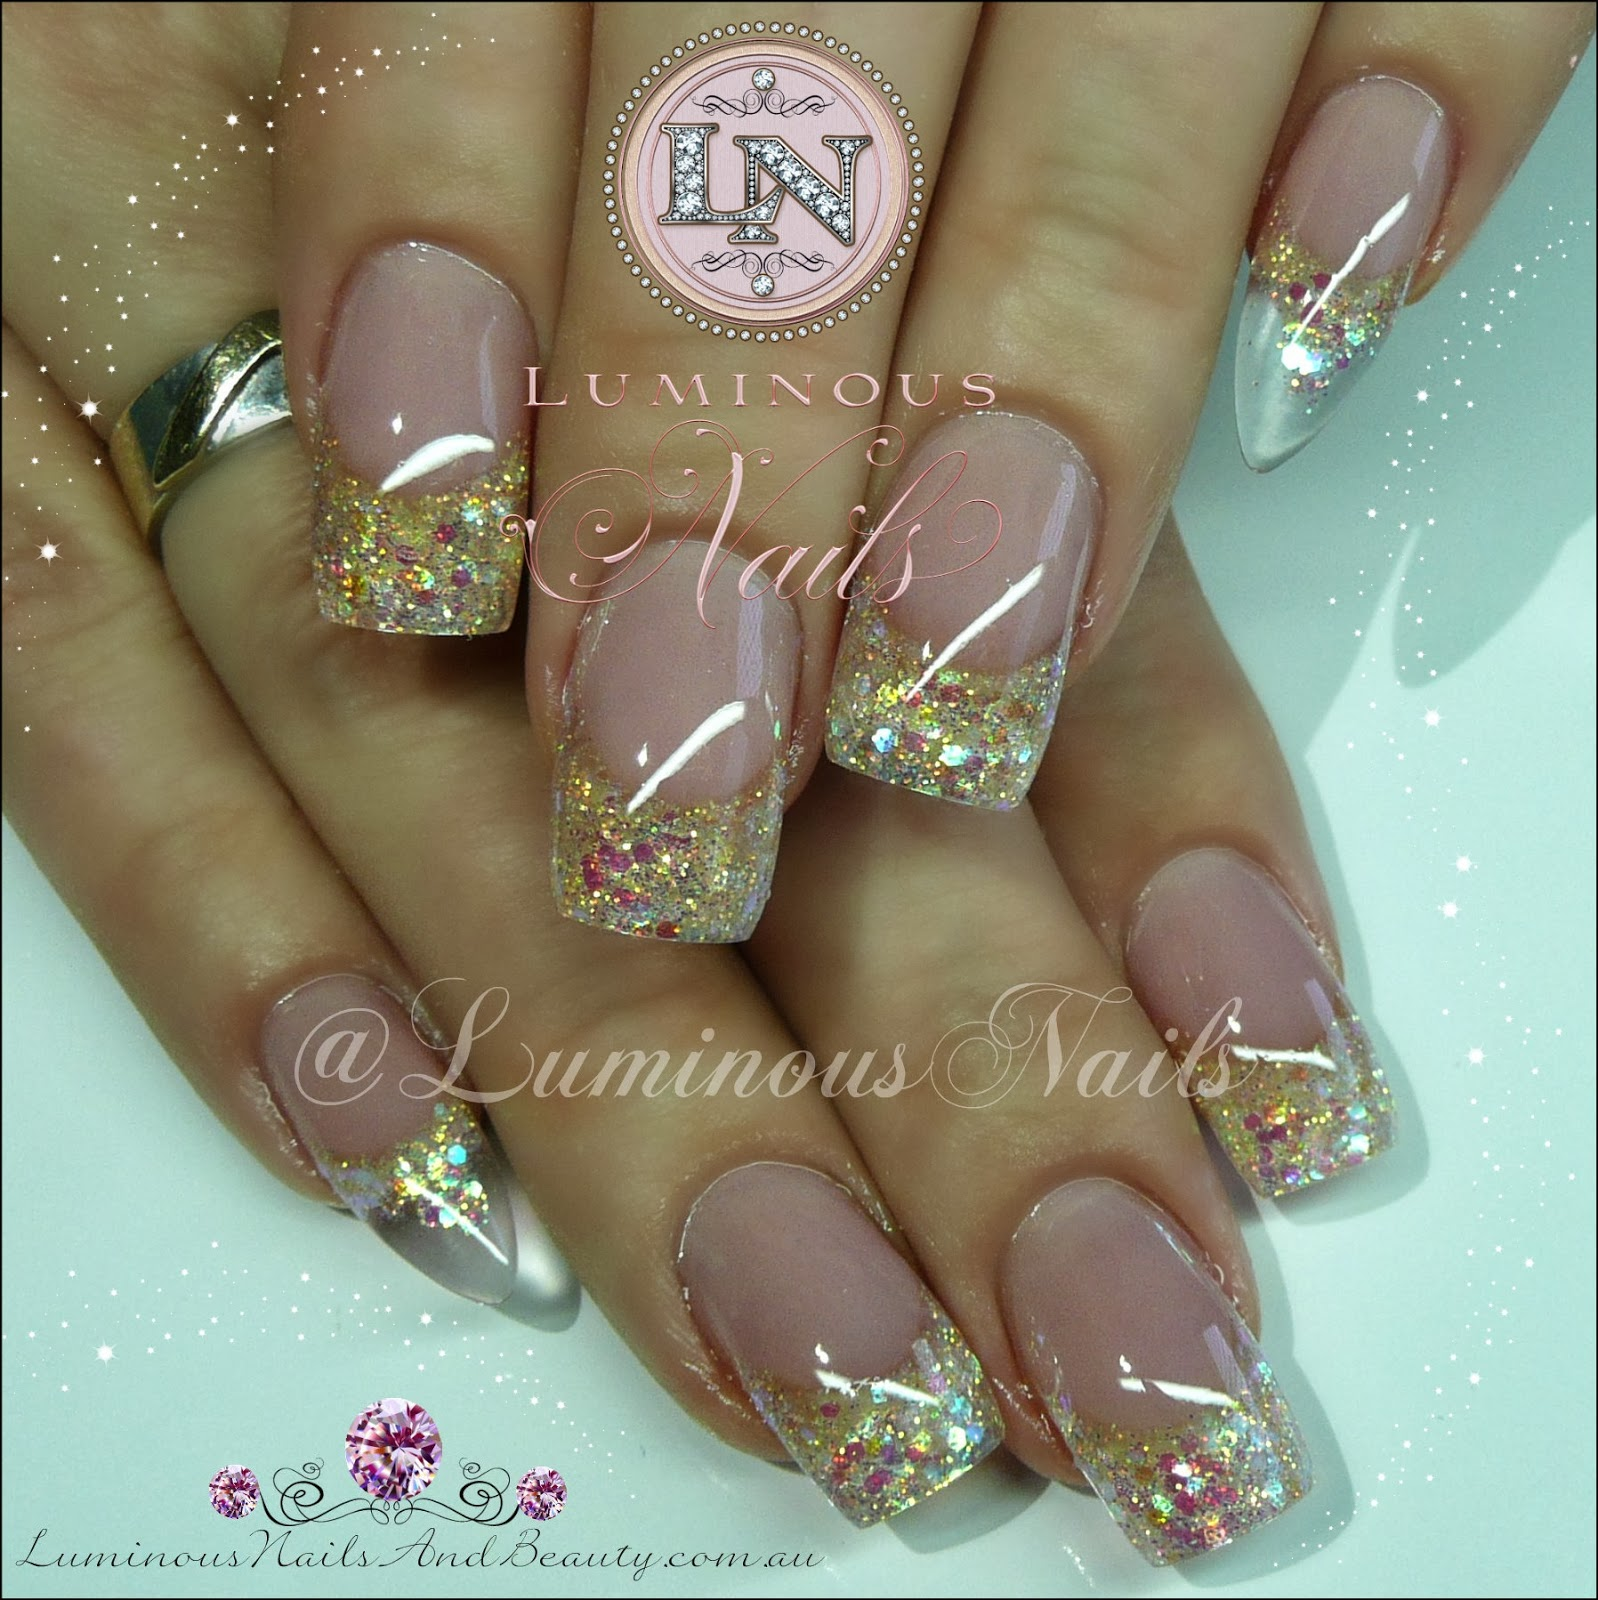 Luminous Nails: February 2014